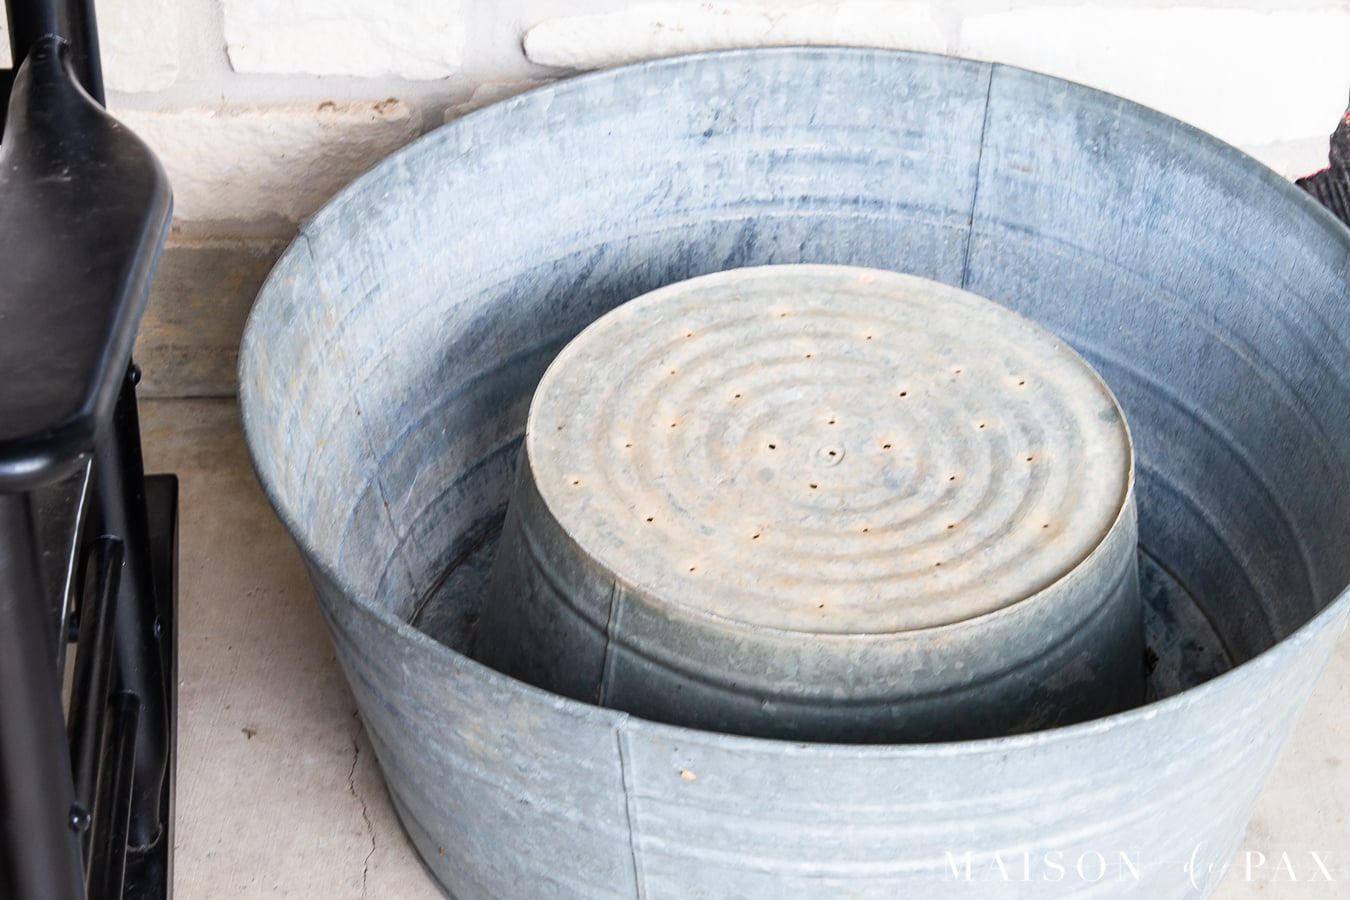 smaller galvanized tub inside a larger for porch planter | Maison de Pax